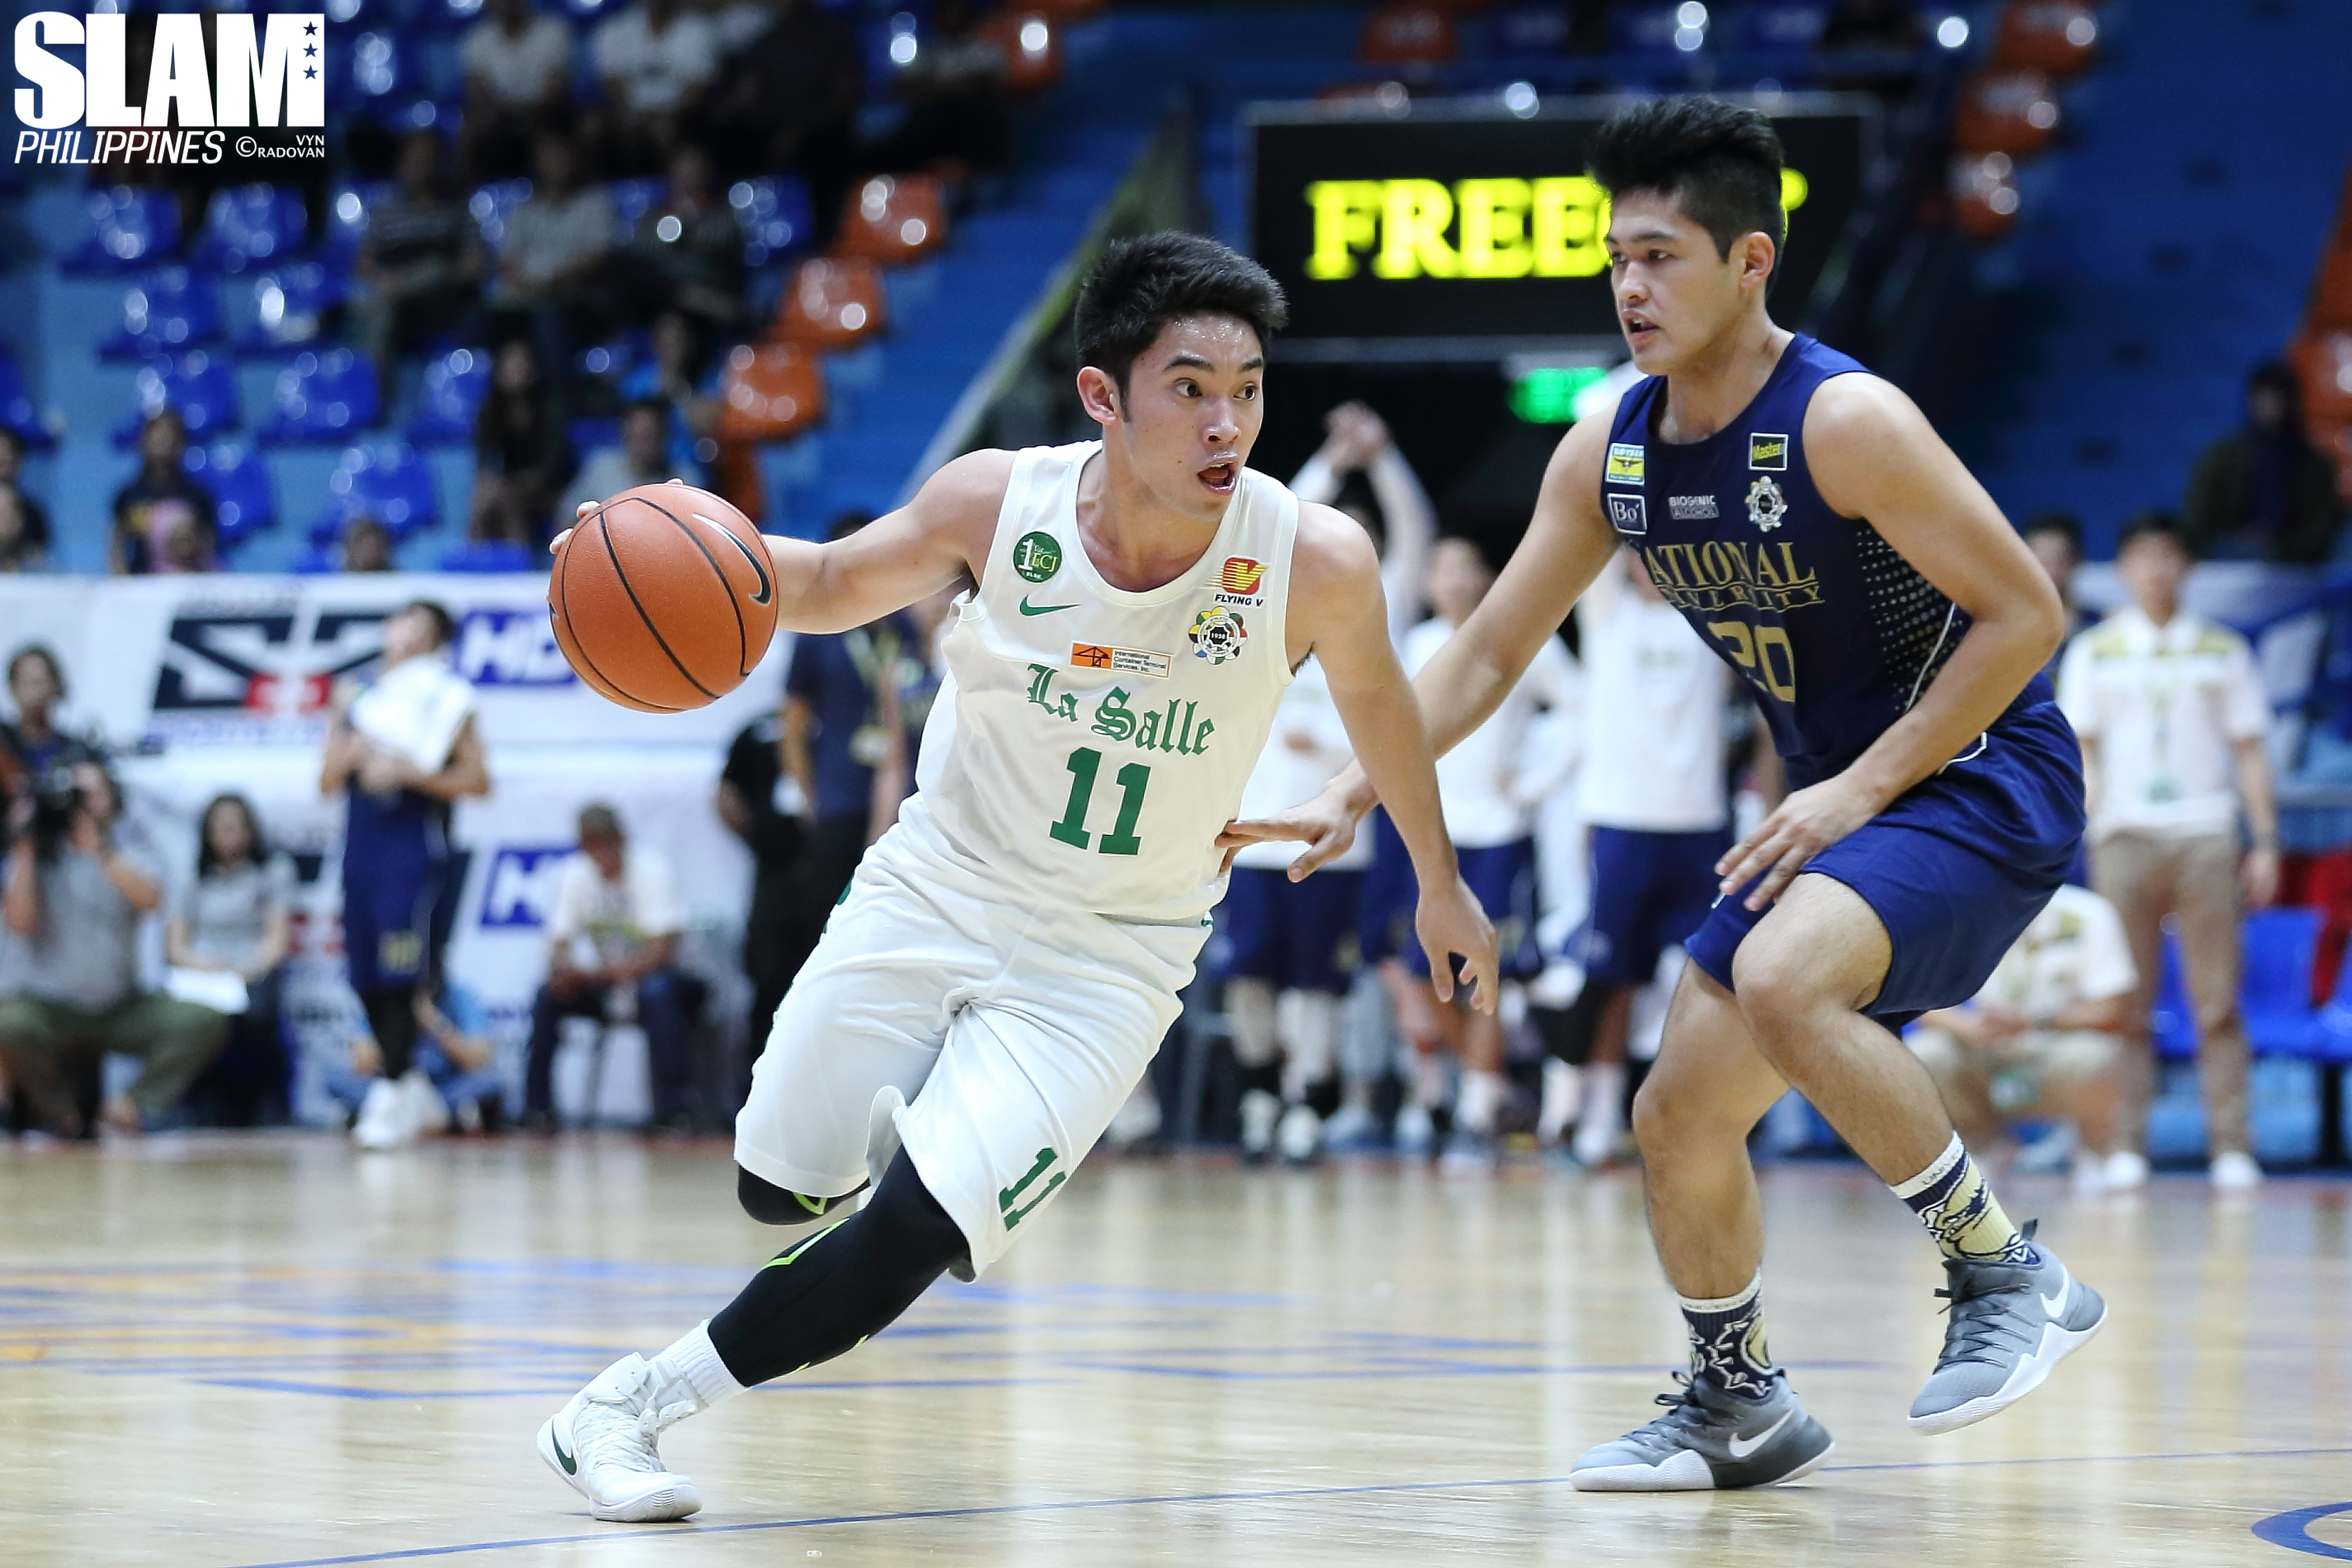 uaap-dlsu-vs-nu-october-19-2016-vr-4